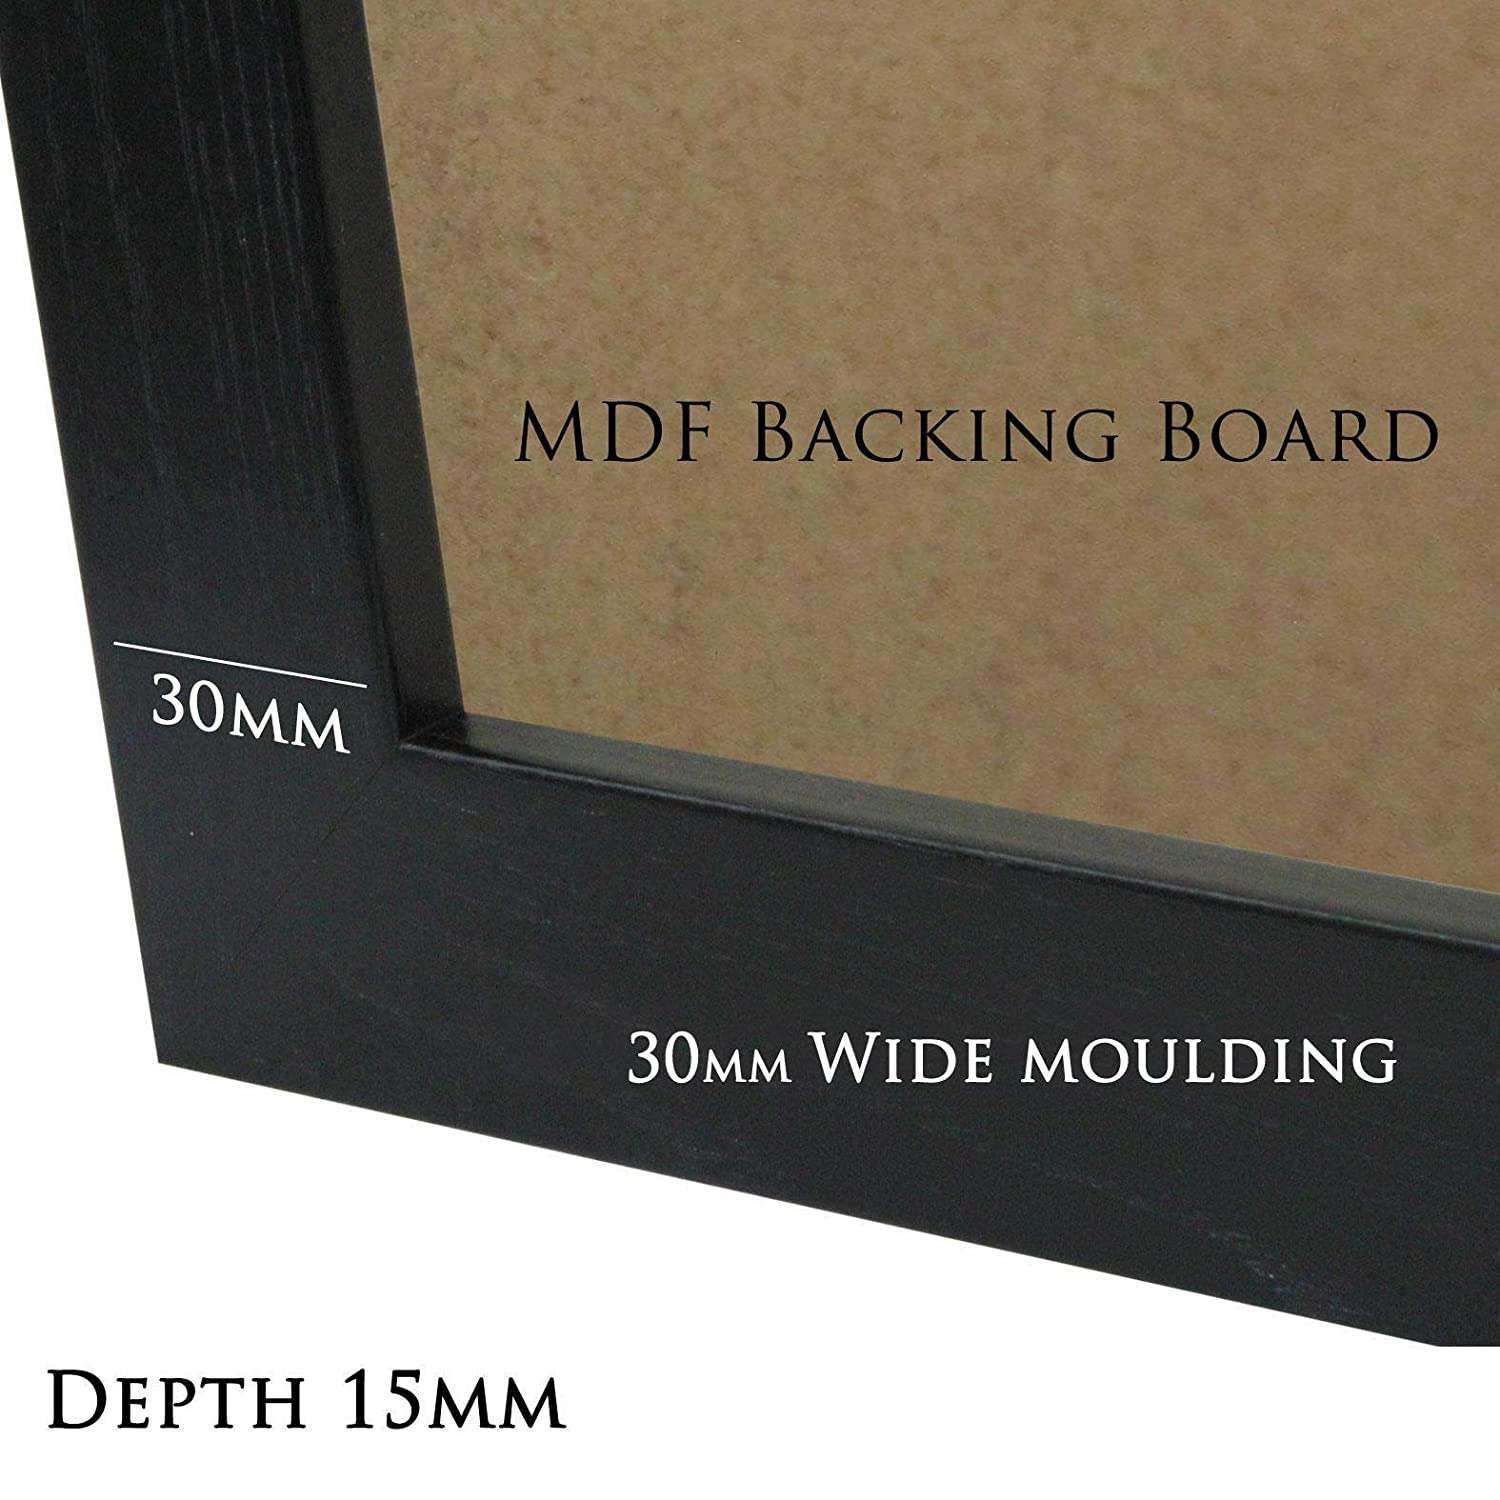 Gold, A1 33.1x23.4 IN 84.1x59.4 CM JD Frames Picture Photo Poster Frame Black Beech Gold Silver Mahogany White FLAT Shape Moulding